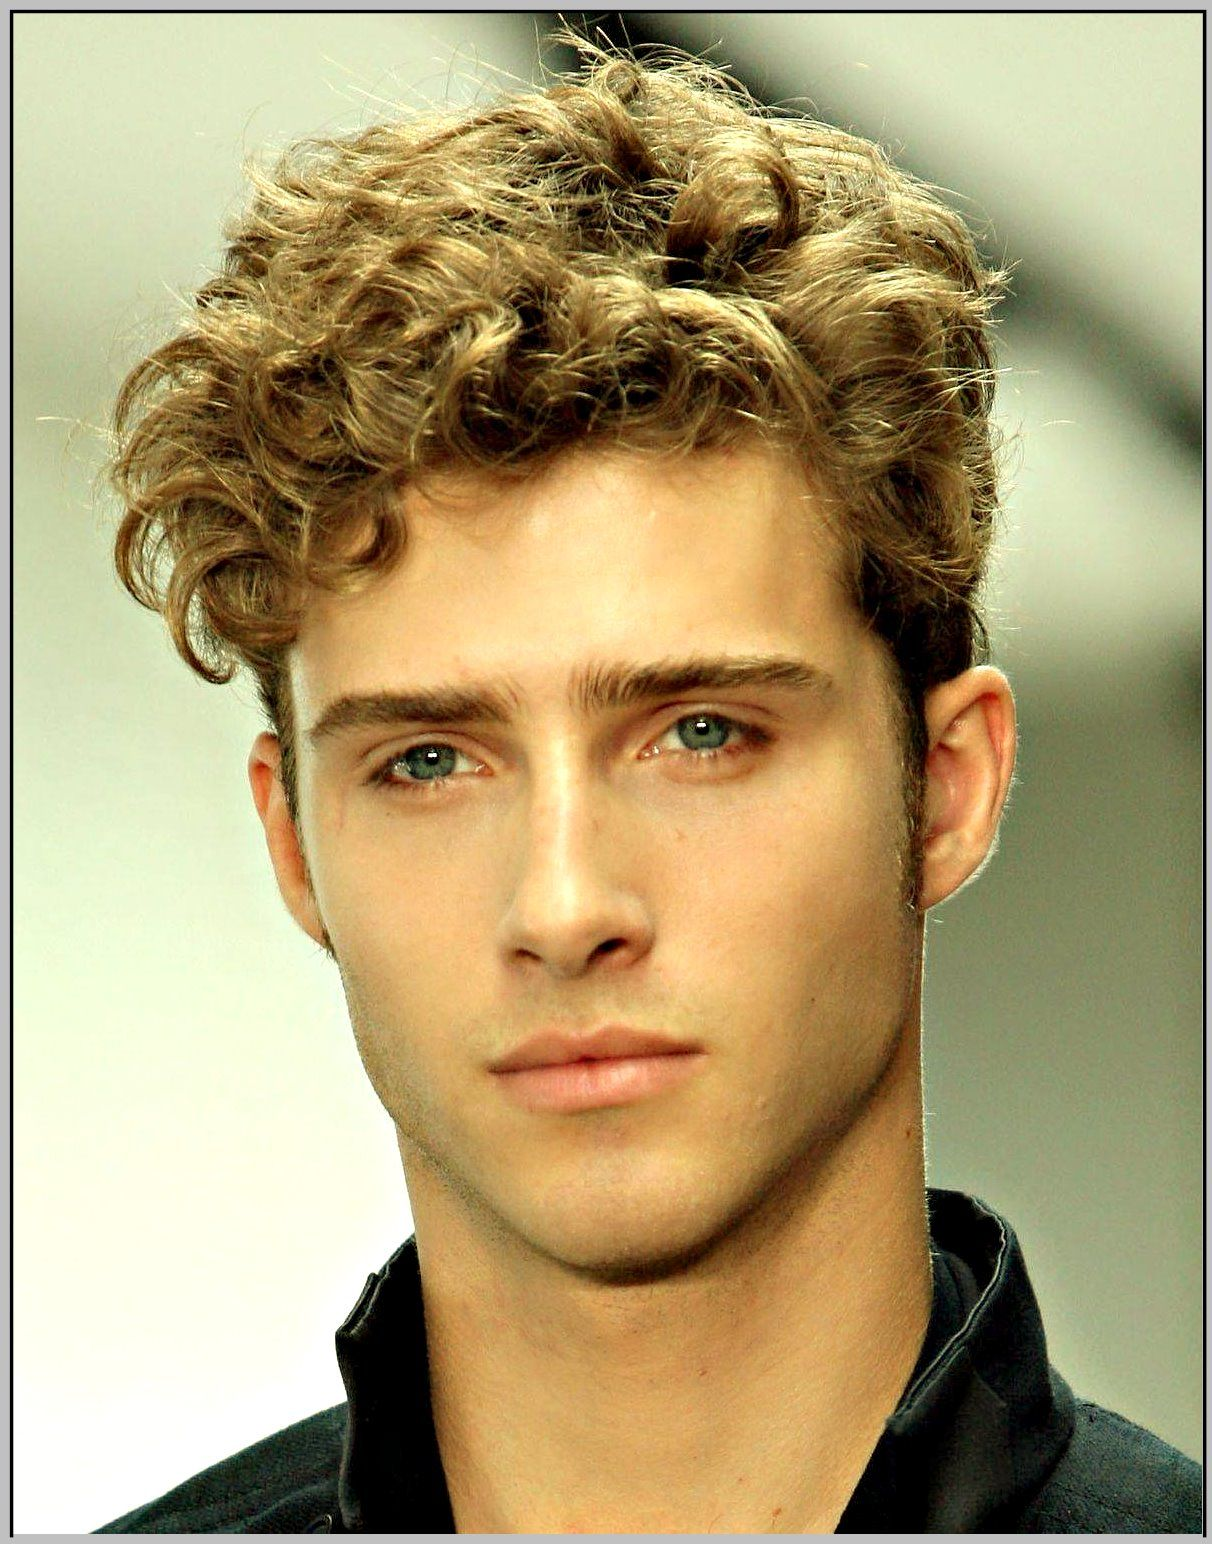 Ponytail Long Hairstyles For Men Curly Hair